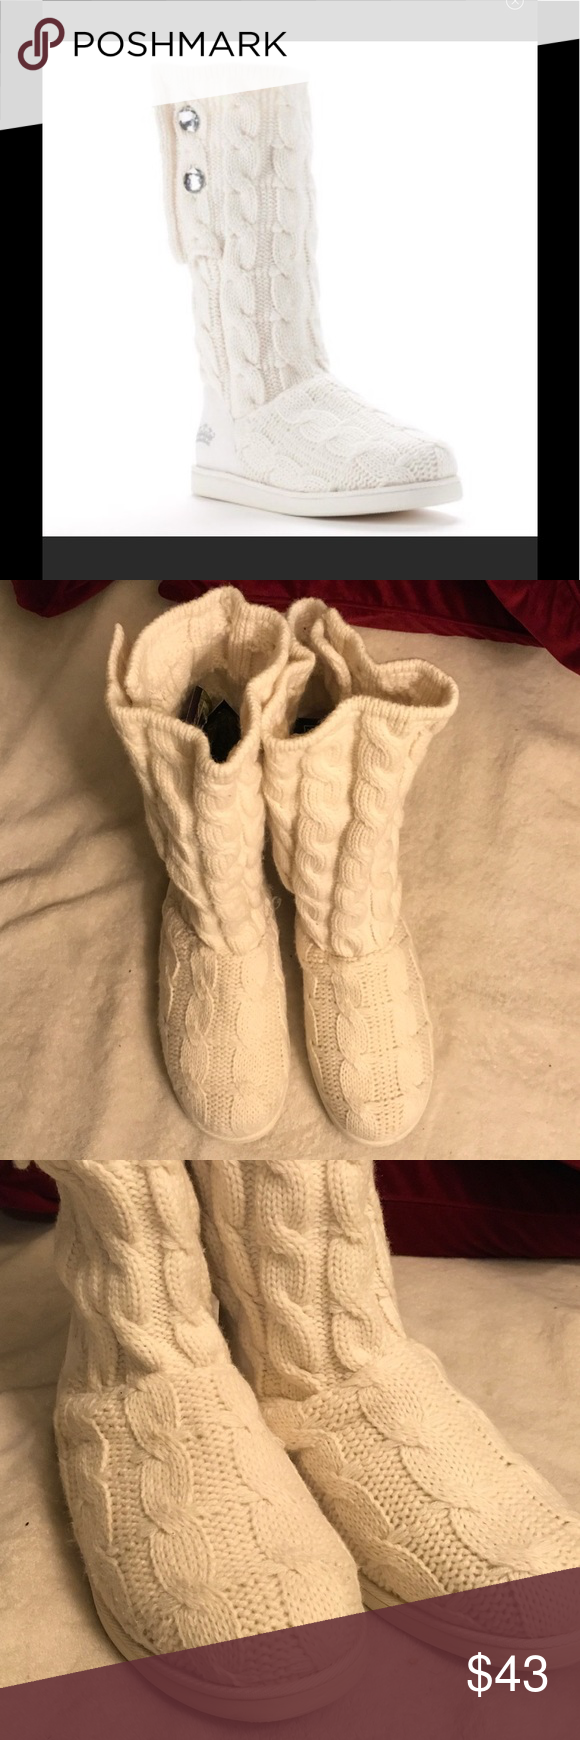 Selling this Juicy Couture Marlin sweater boots on Poshmark! My username is: dresstyle. #shopmycloset #poshmark #fashion #shopping #style #forsale #Bird by Juicy Couture #Shoes